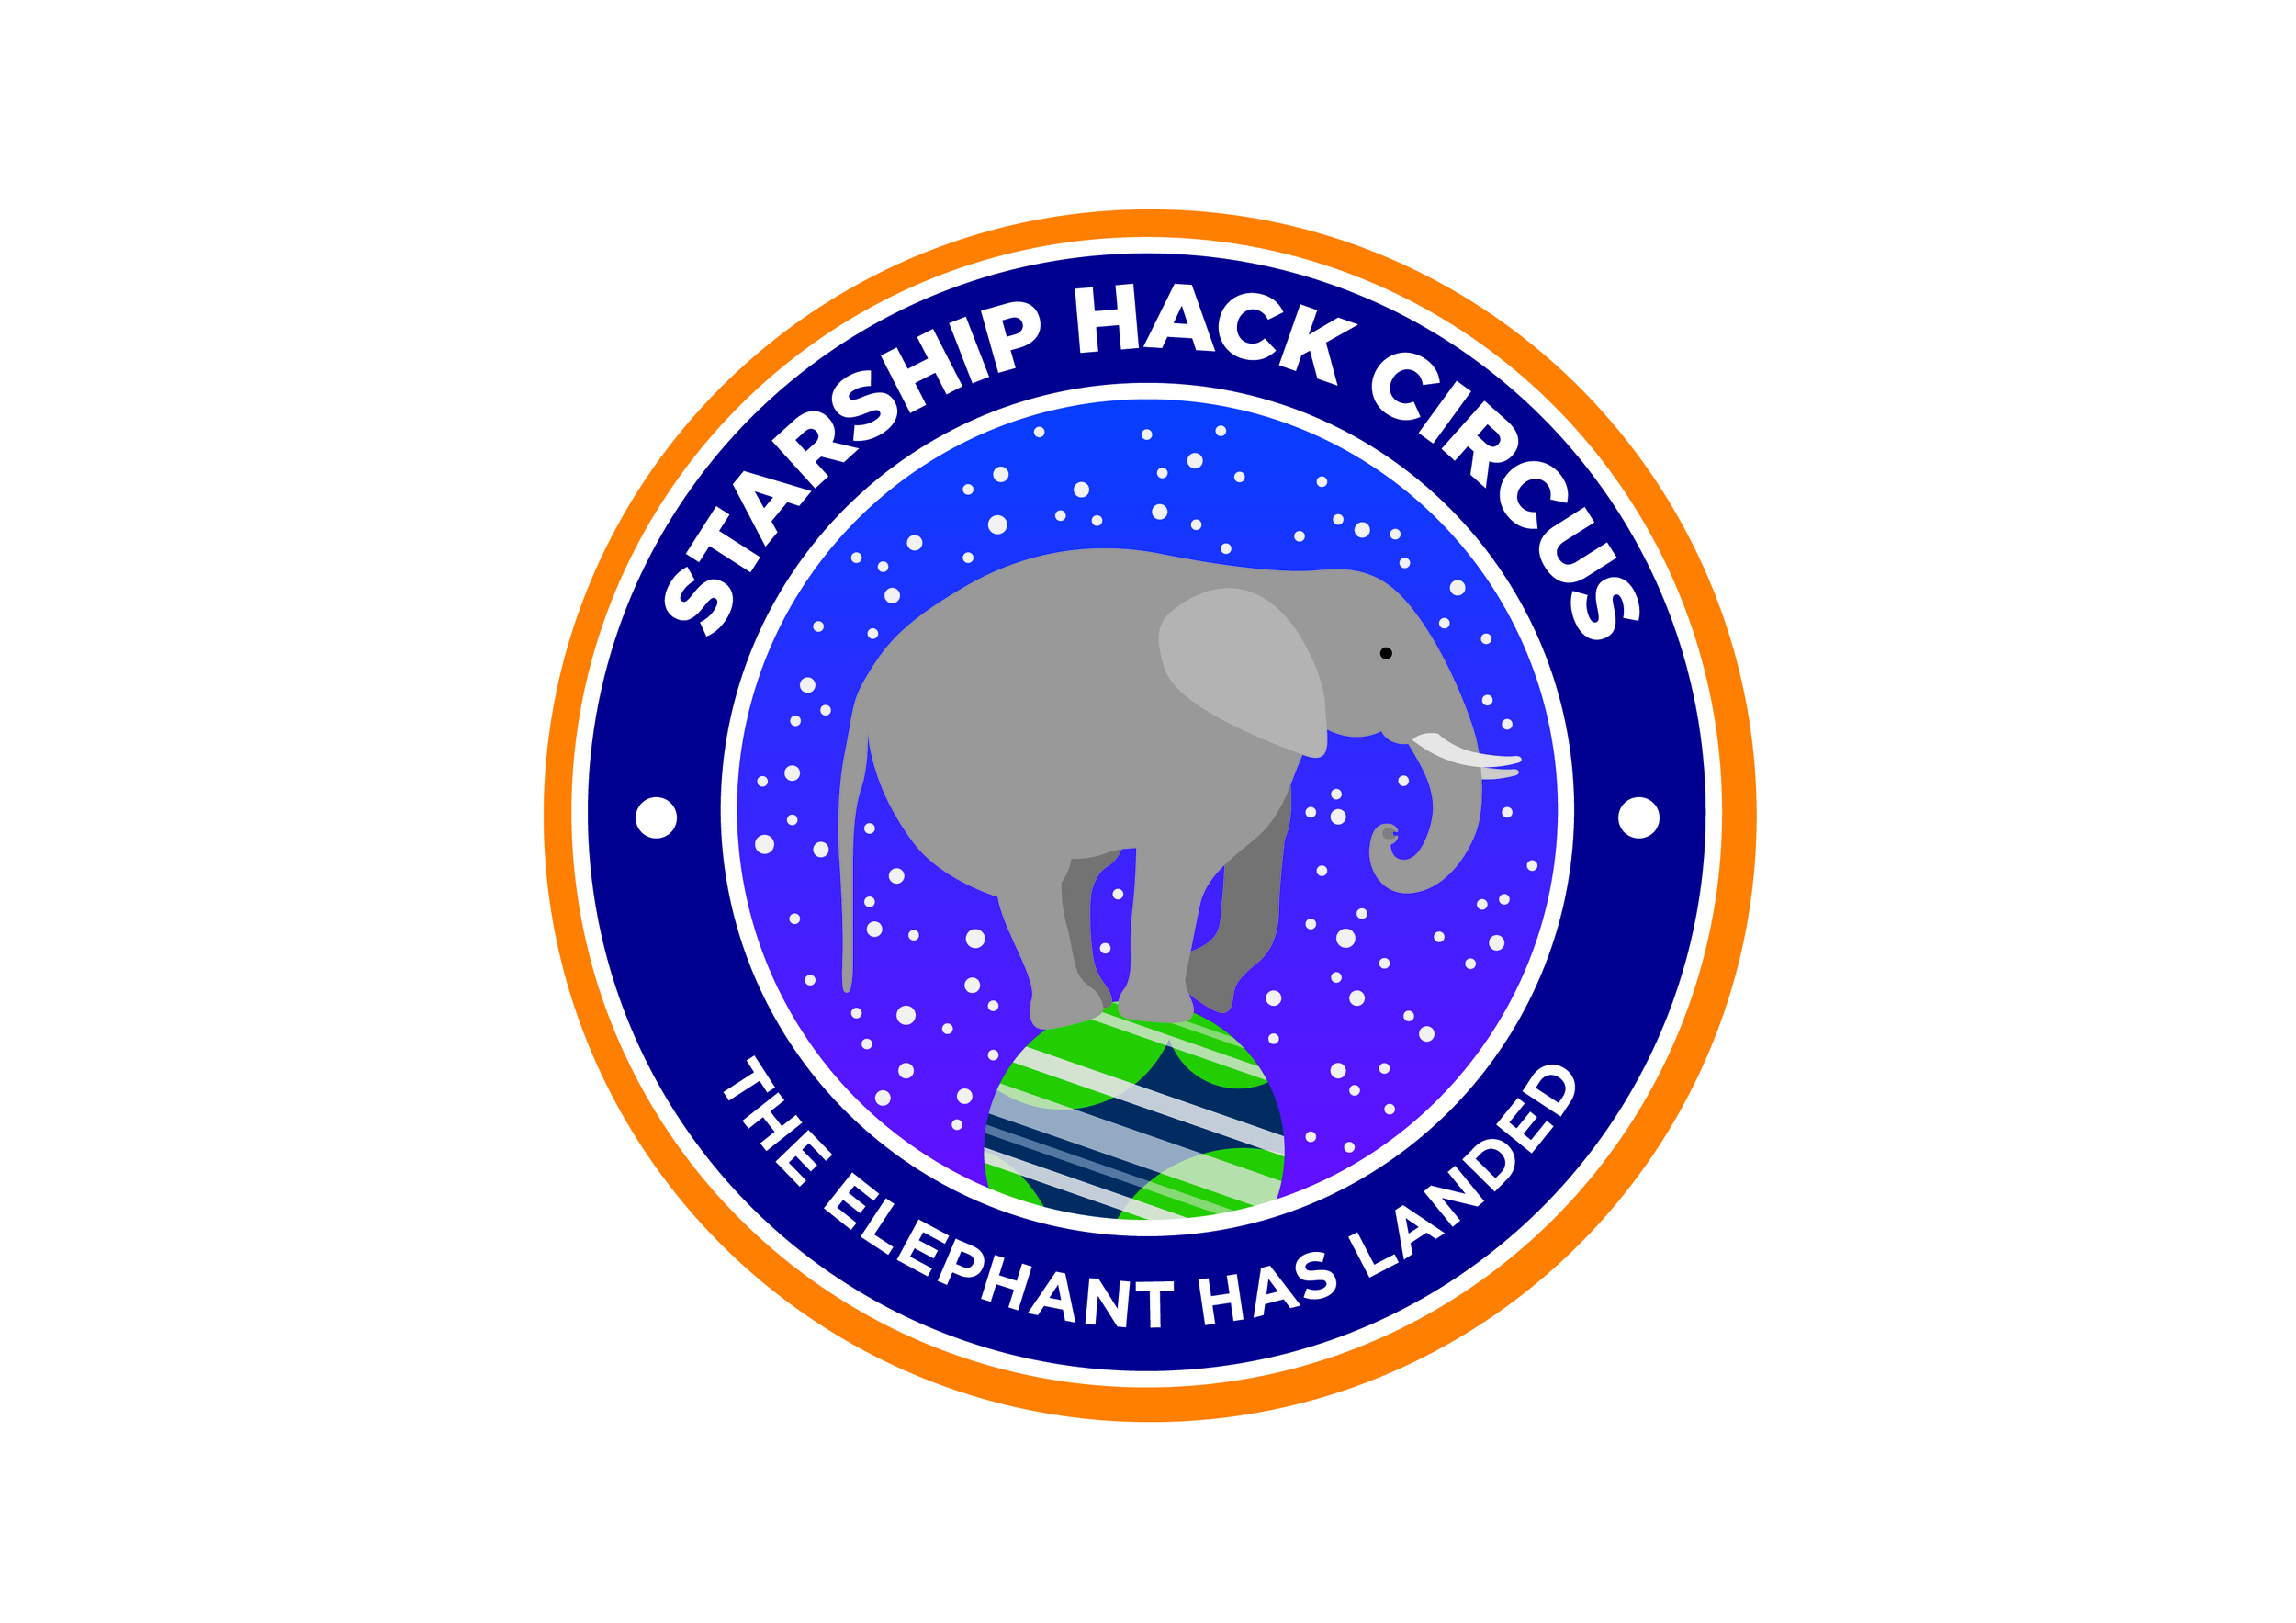 Starship Hack Circus. An immersive journey to a nearby star system, with expert talks and a specially made Marconi radio system. September 2014.